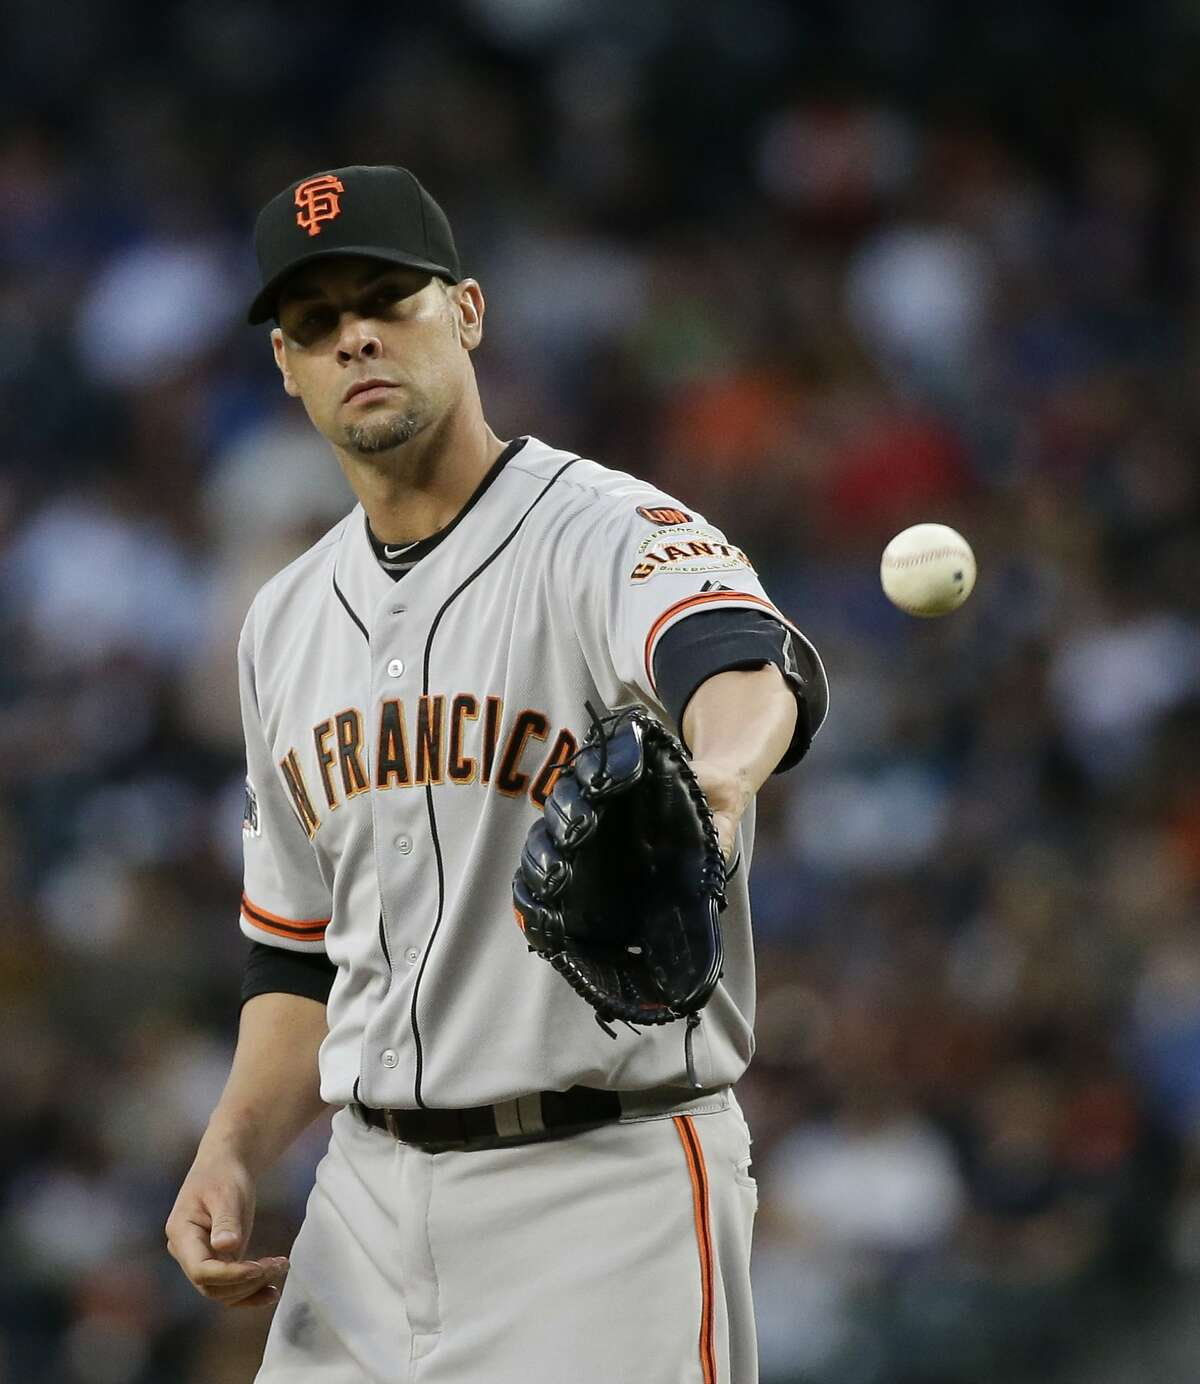 San Francisco Giants starting pitcher Ryan Vogelsong in action against the Seattle Mariners in a baseball game Thursday, June 18, 2015, in Seattle. (AP Photo/Elaine Thompson)